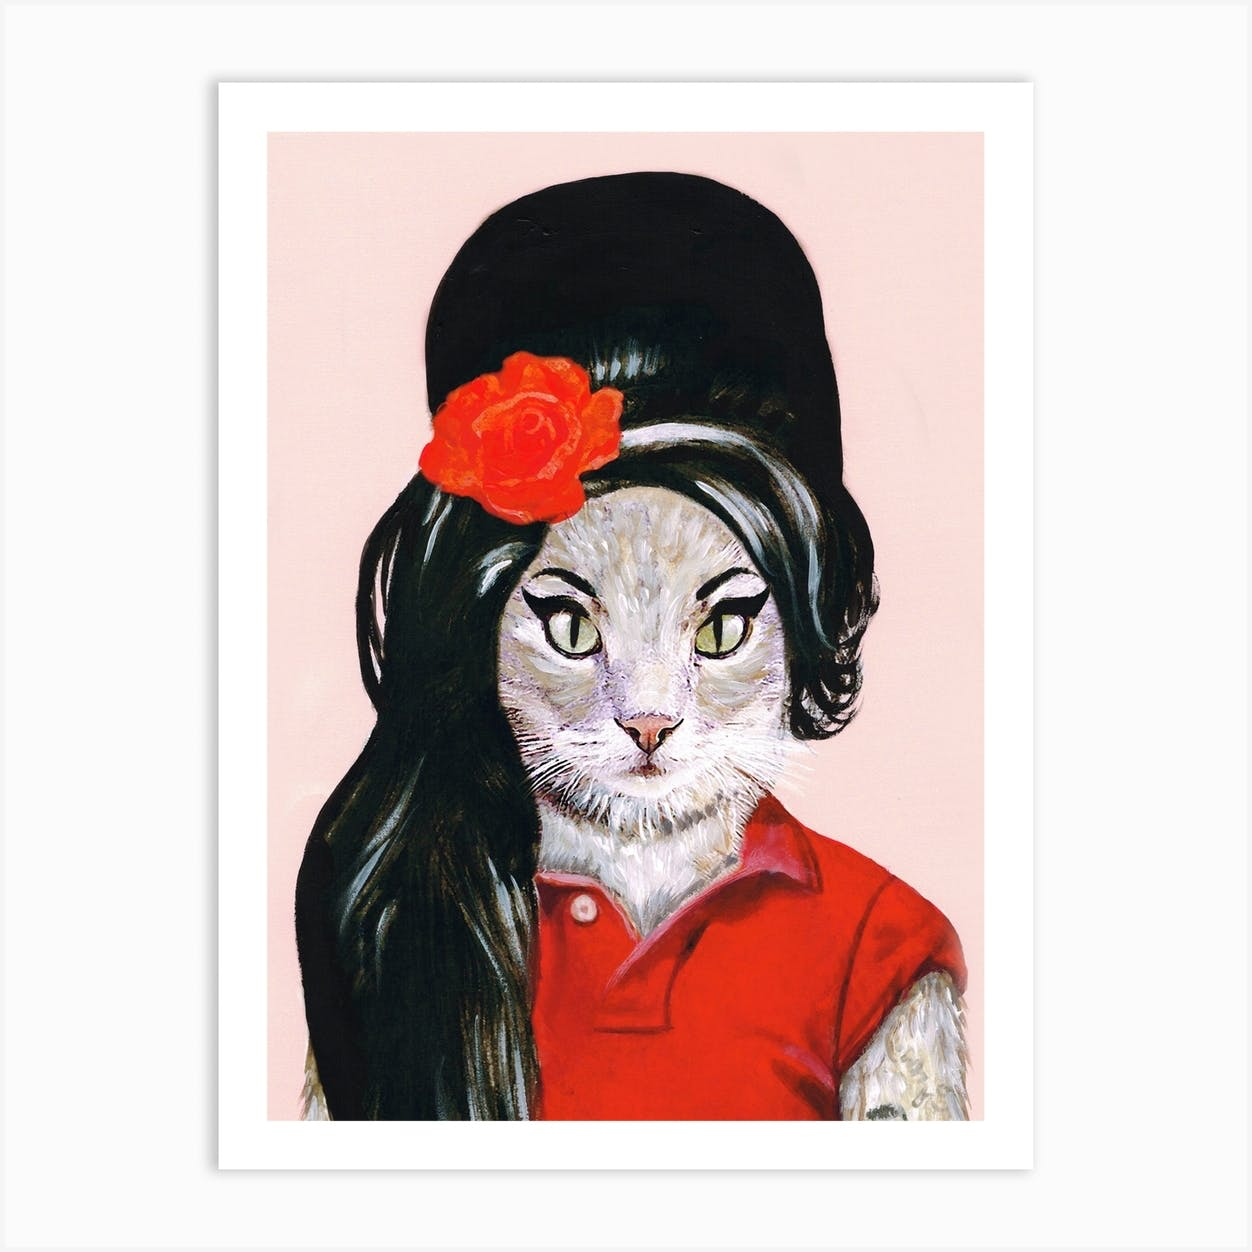 AMY WINEHOUSE CANVAS PICTURE PRINT WALL ART FREE FAST DELIVERY